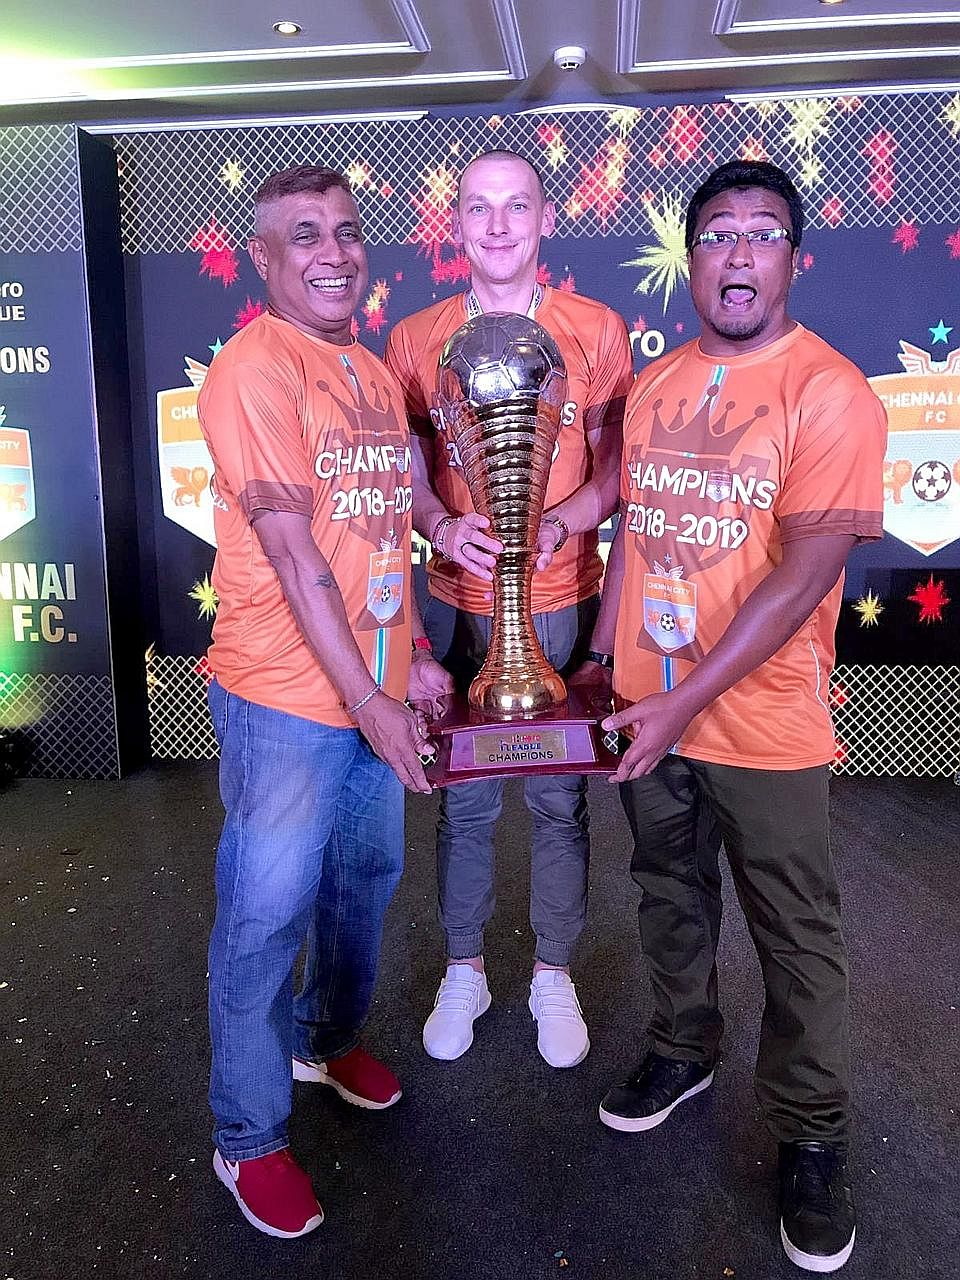 I-League champions Chennai City coach Akbar Nawas, import Jozef Kaplan and assistant coach K. Balagumaran posing with the I-League trophy. Akbar was named Coach of the Year at the I-League awards and trophy presentation ceremony on Wednes